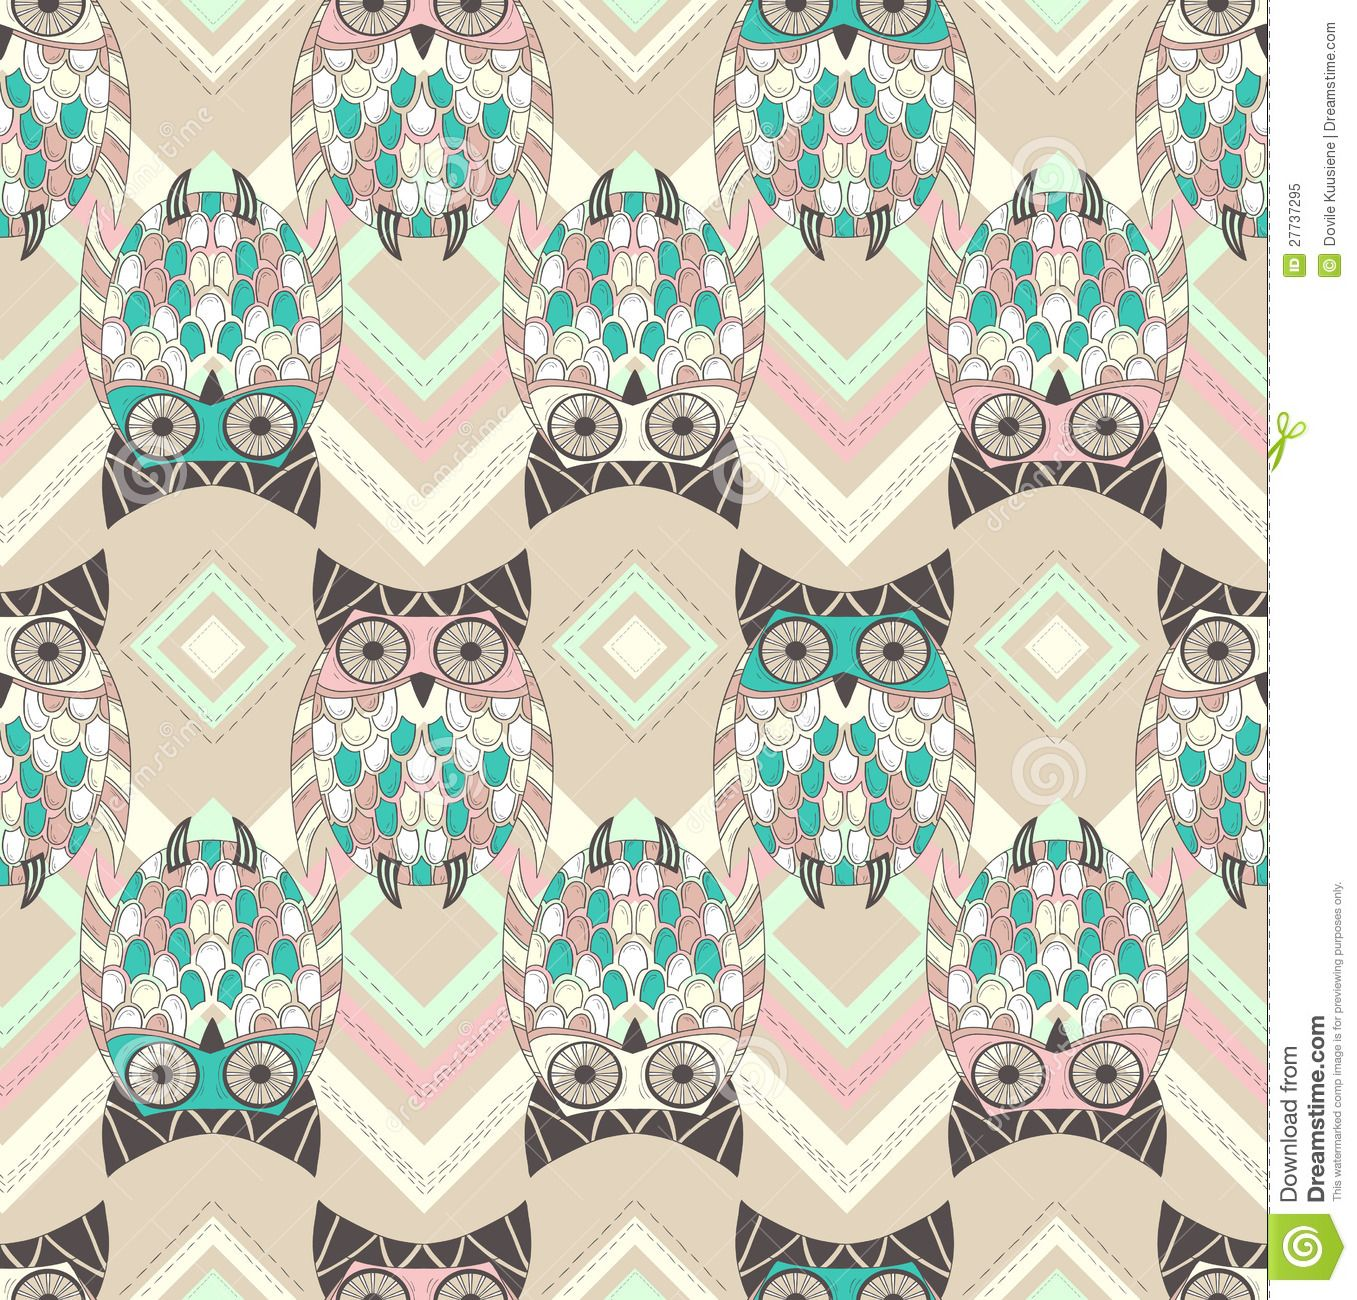 Native canadian pattern google sgning owls pinterest seamless and tileable vector owl background pattern stock vector image 37968220 voltagebd Image collections